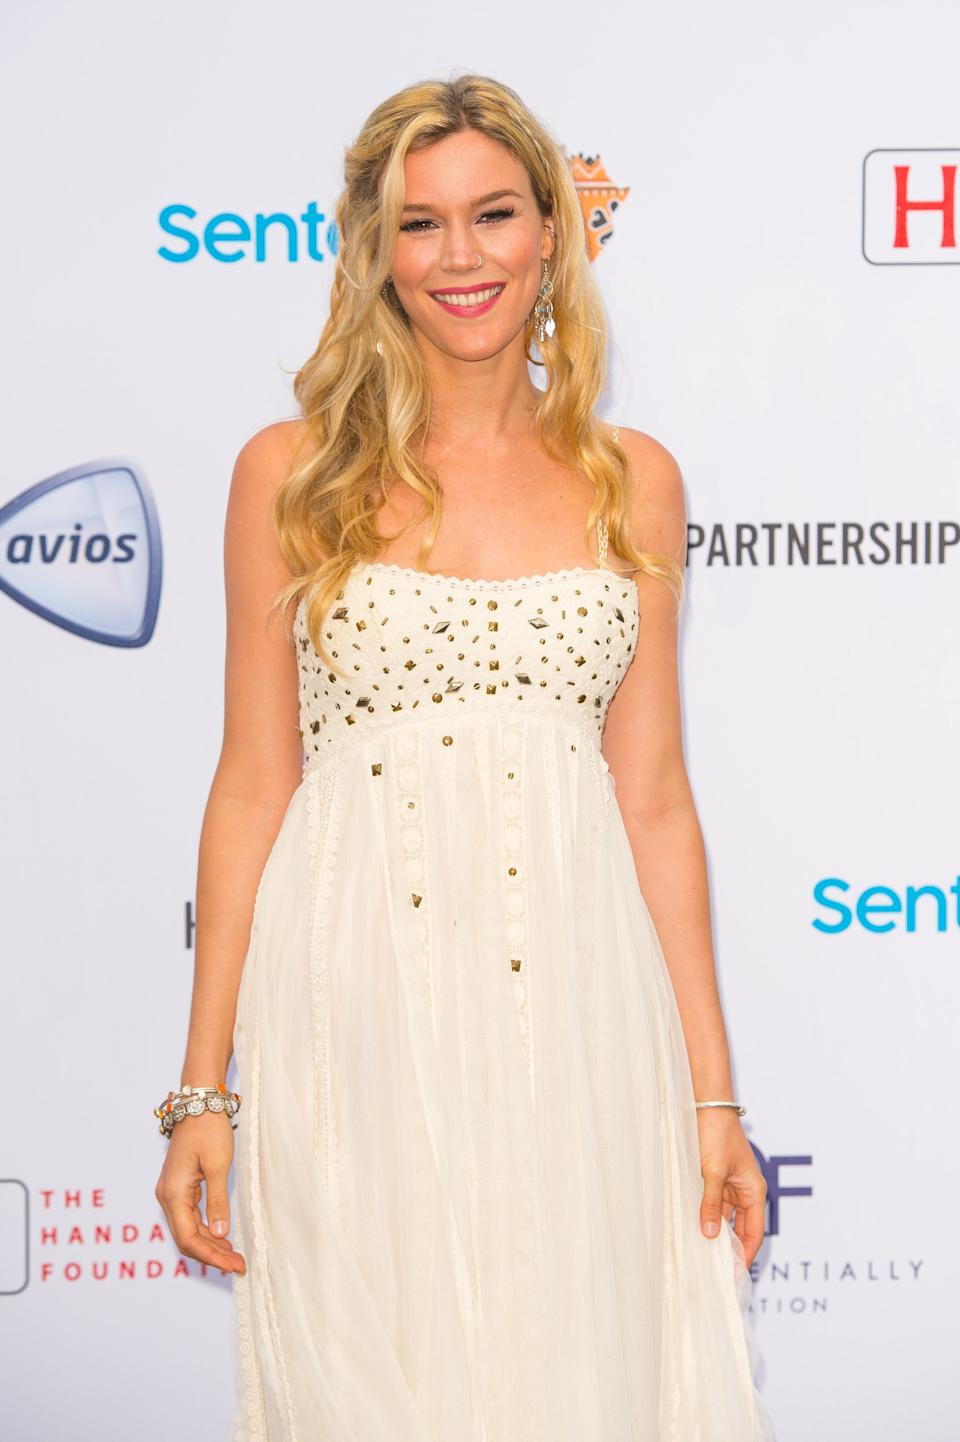 Joss Stone attending a concert hosted by Prince Harry's charity Sentebale in Kensington Palace Gardens, London, to raise awareness and funds for adolescents living with HIV in sub-Saharan Africa.